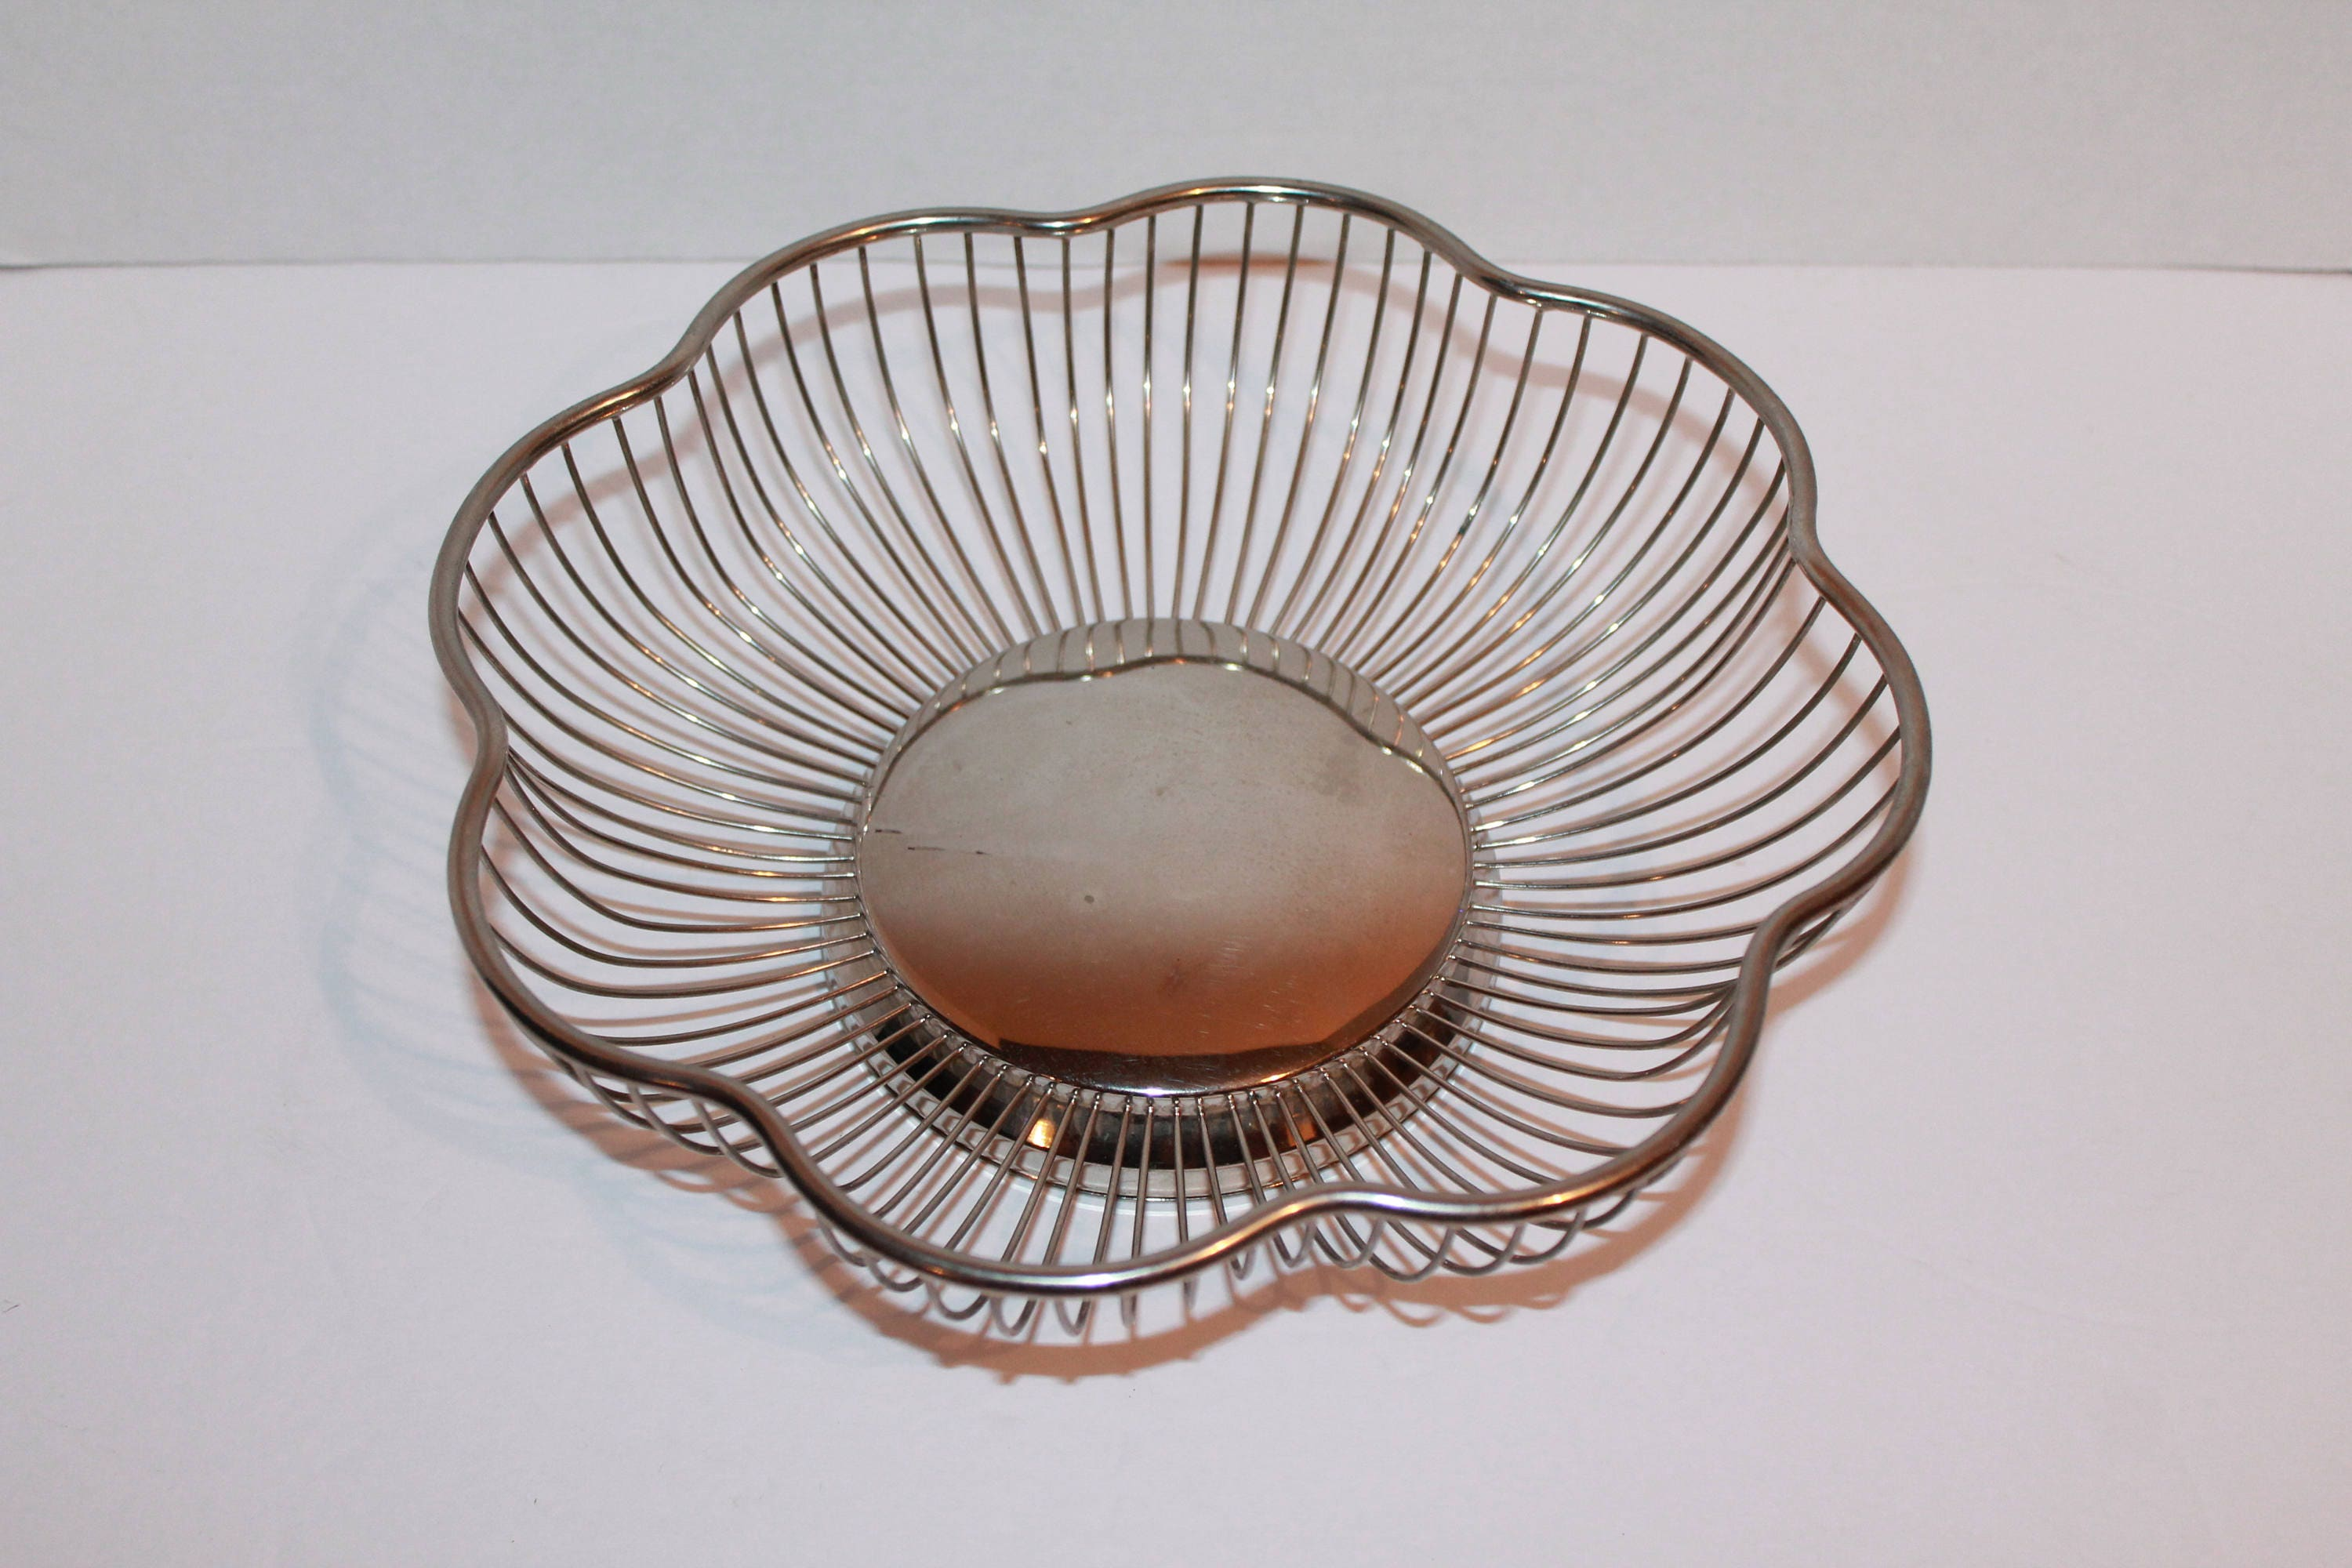 Vintage Silver Plated Scalloped Wire Basket, Fruit Basket, Wire Basket